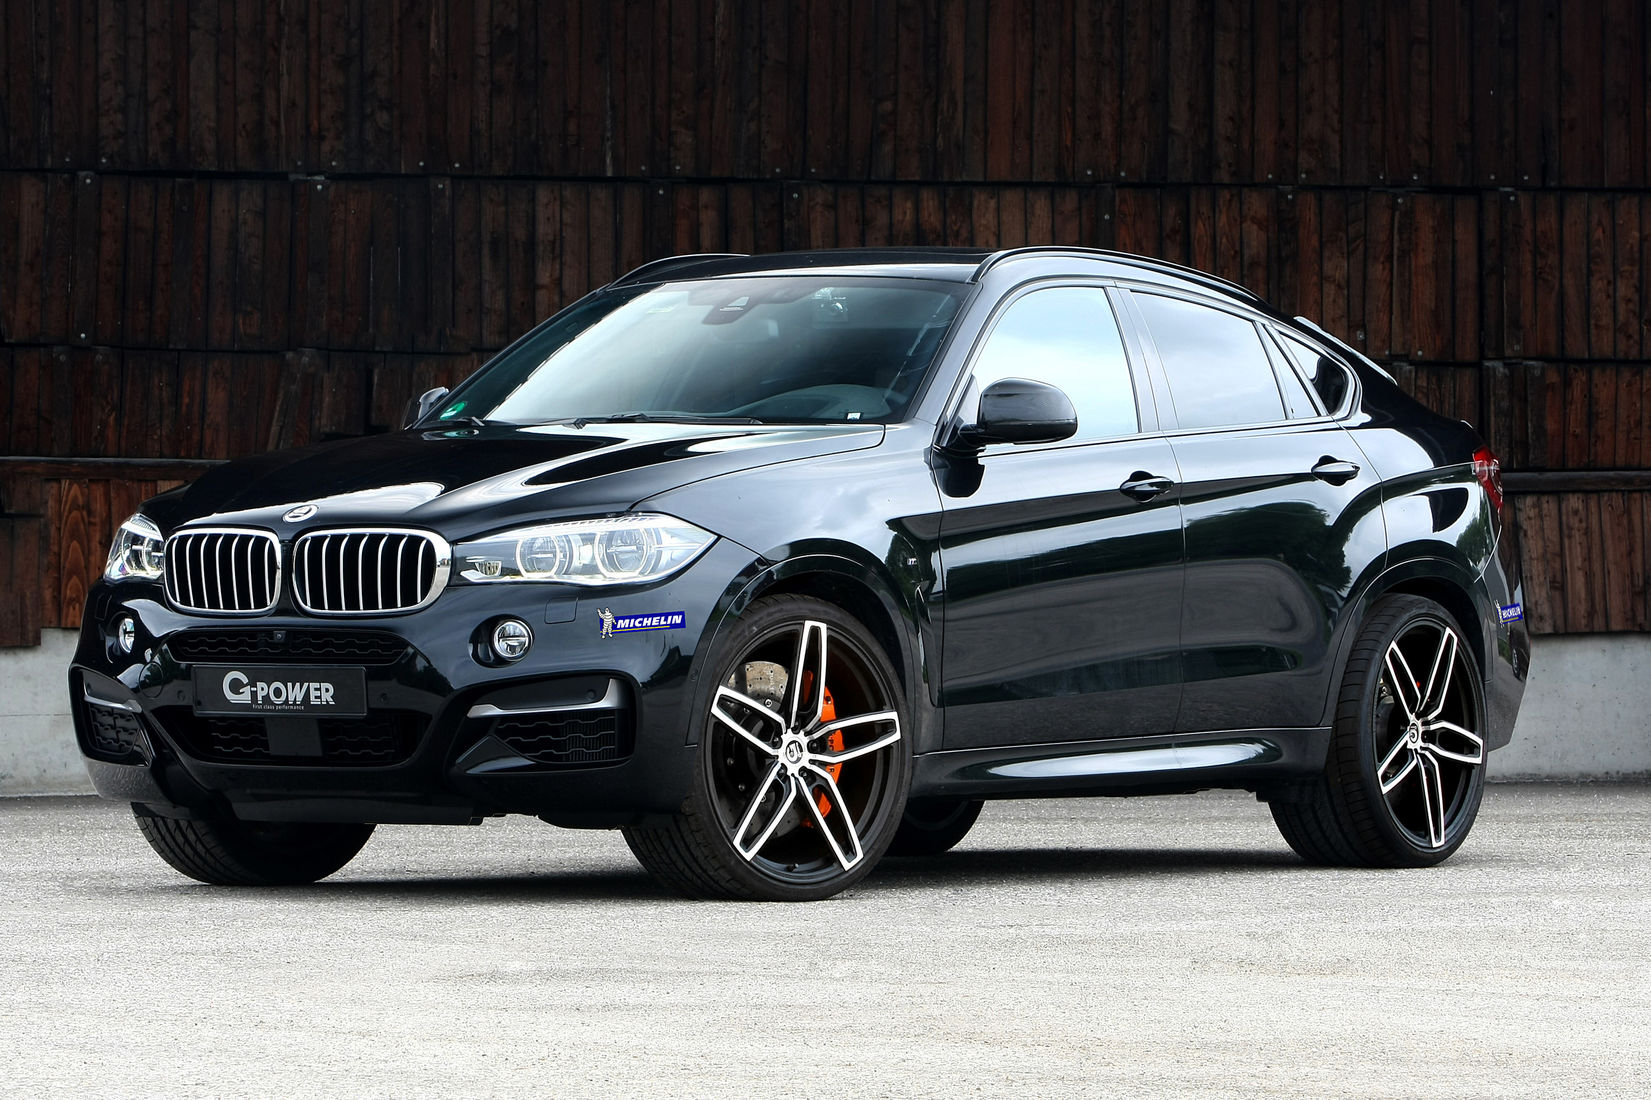 Bmw X6 M50d By G Power